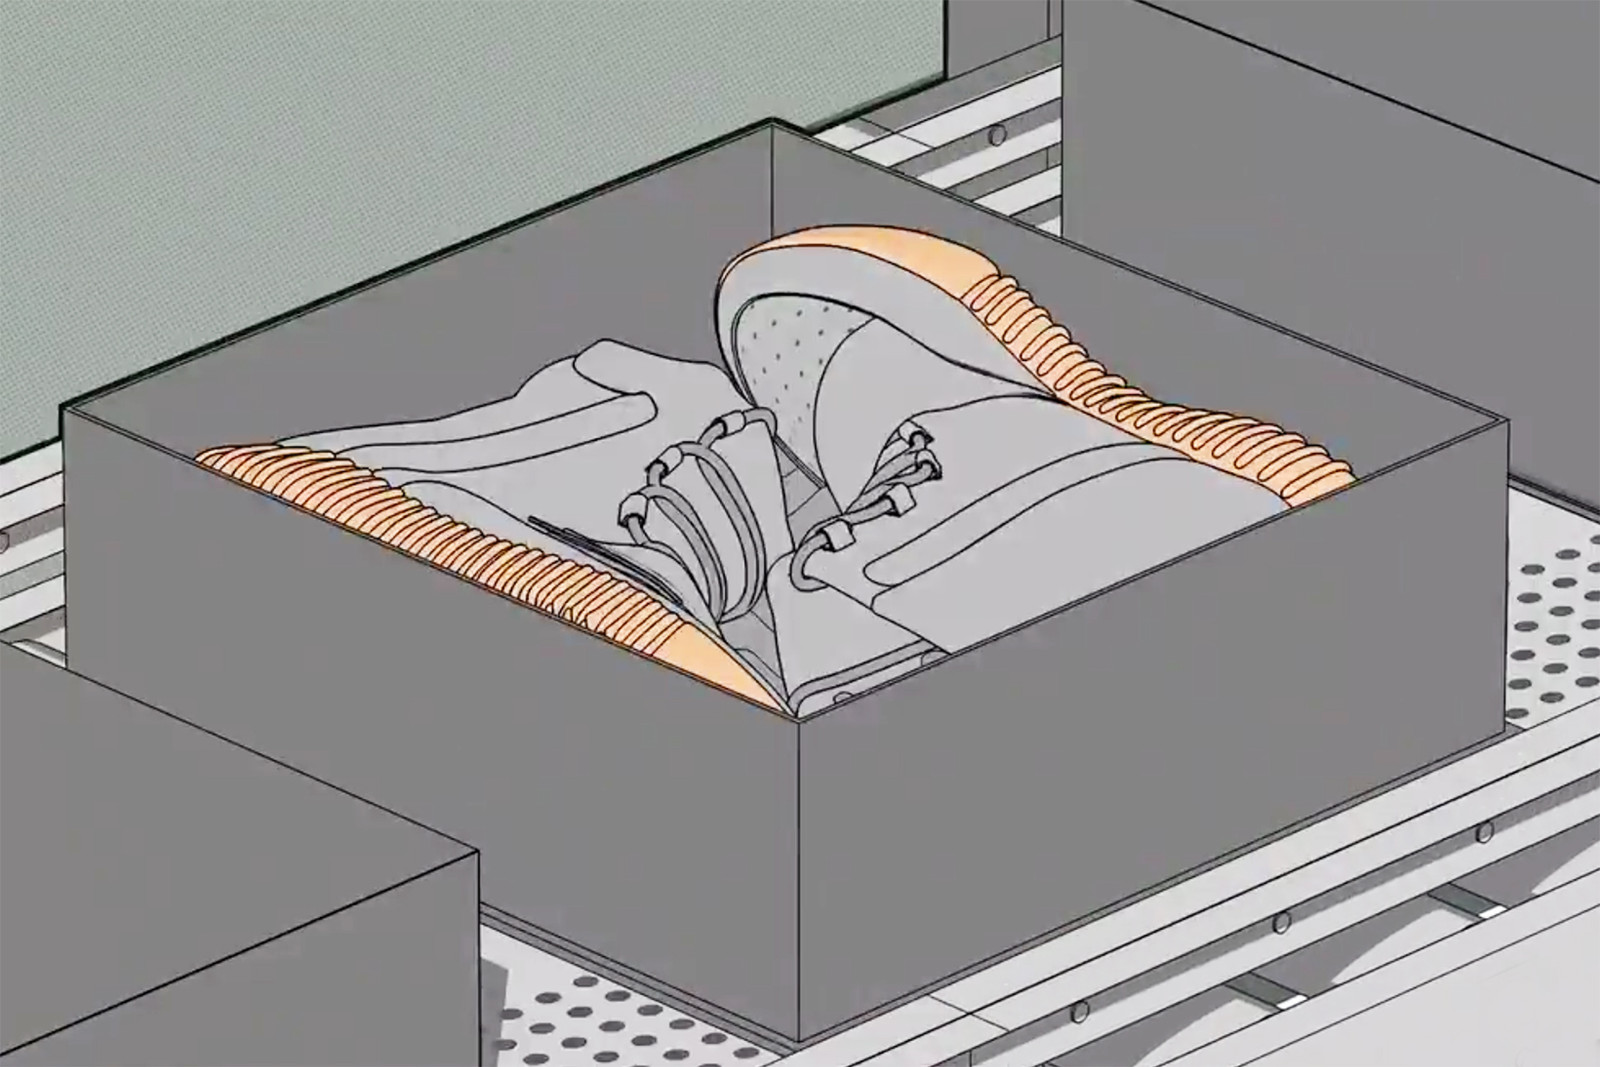 adidas-yeezy-750-how-its-made-00